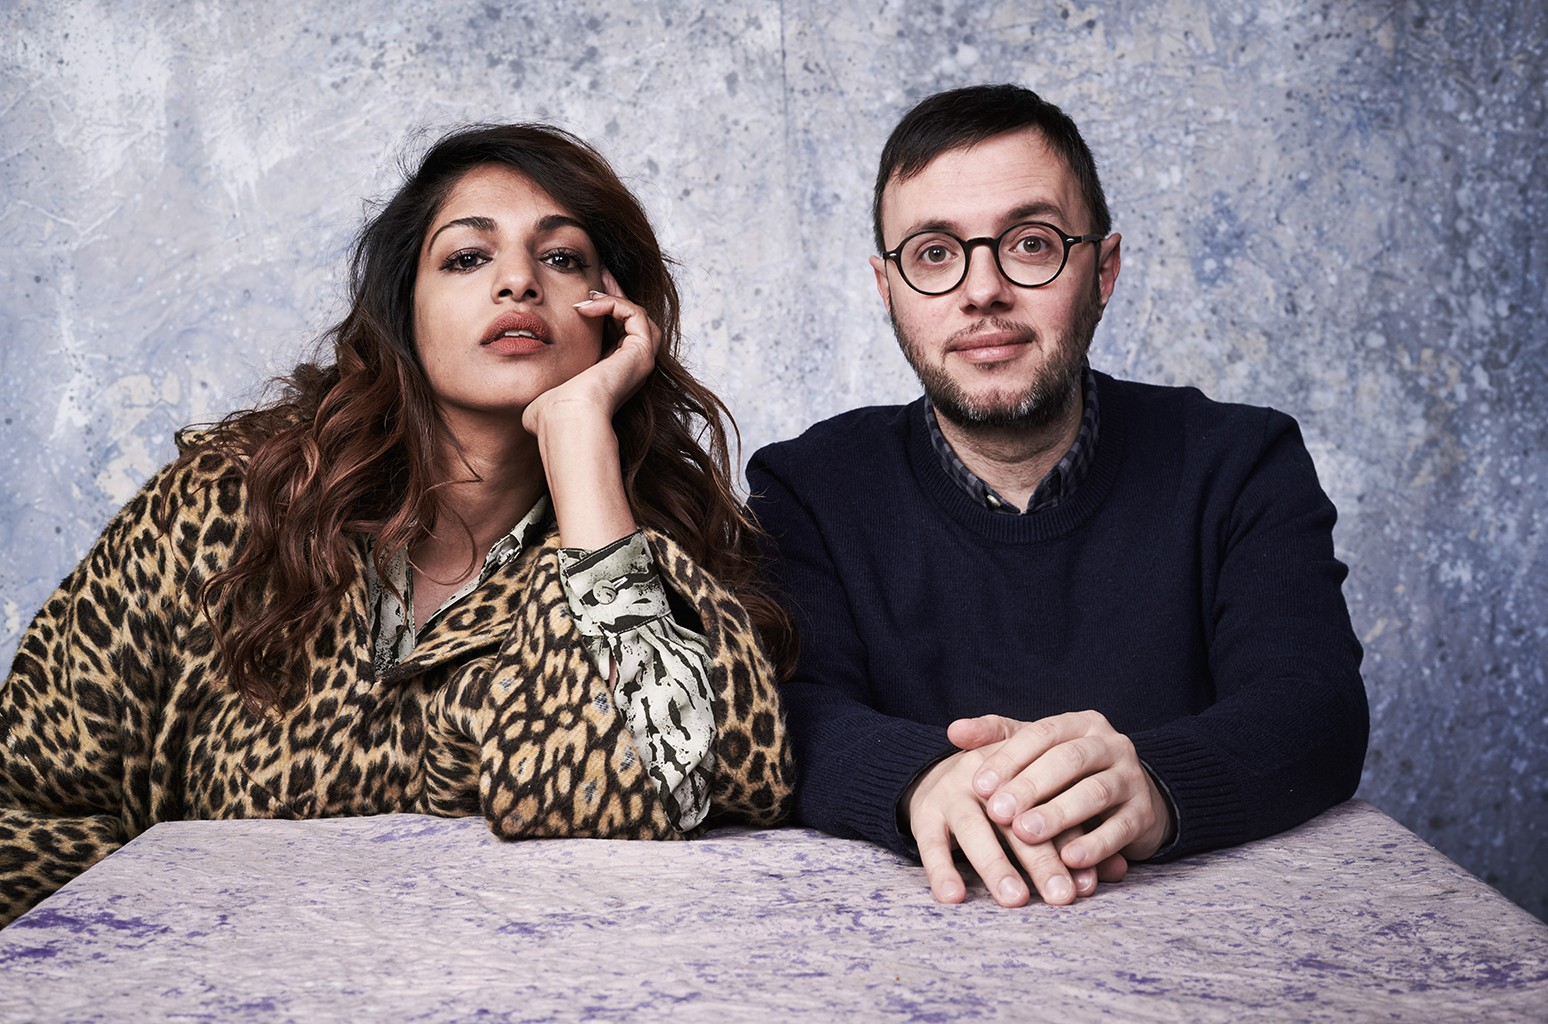 M.I.A and Steve Loveridge